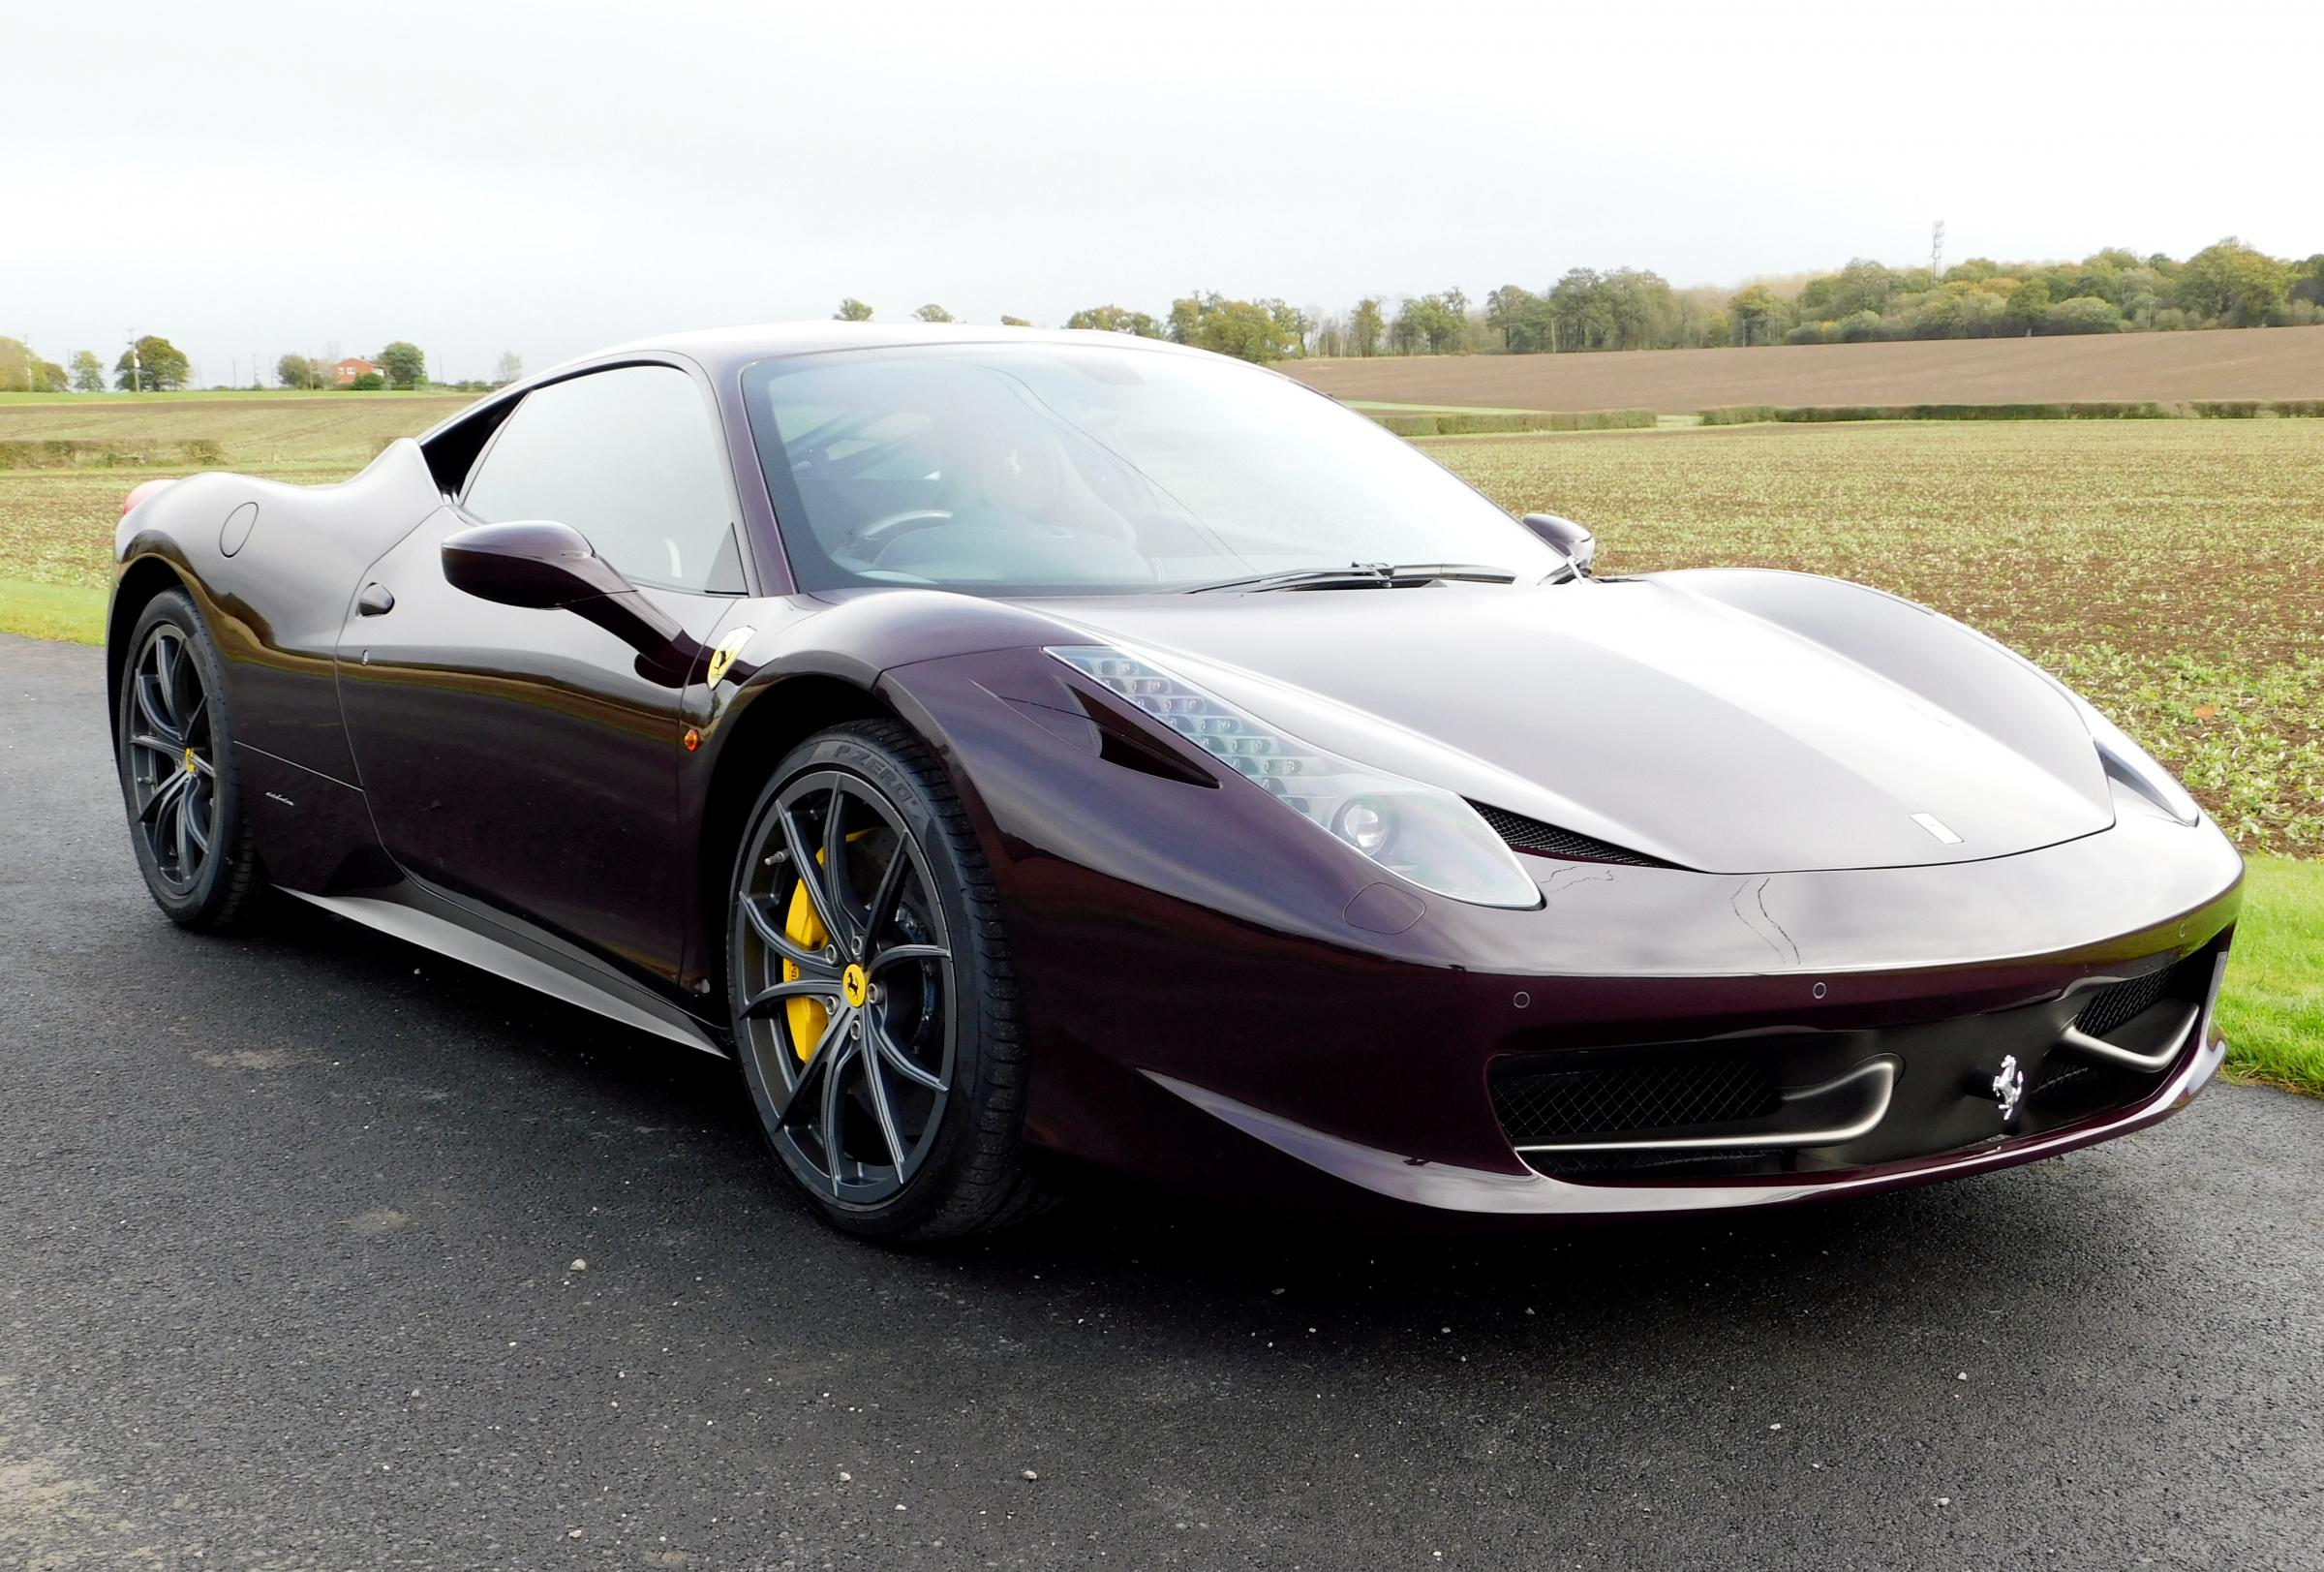 in cars spain for sale classifieds special used you speciale pistonheads ferrari